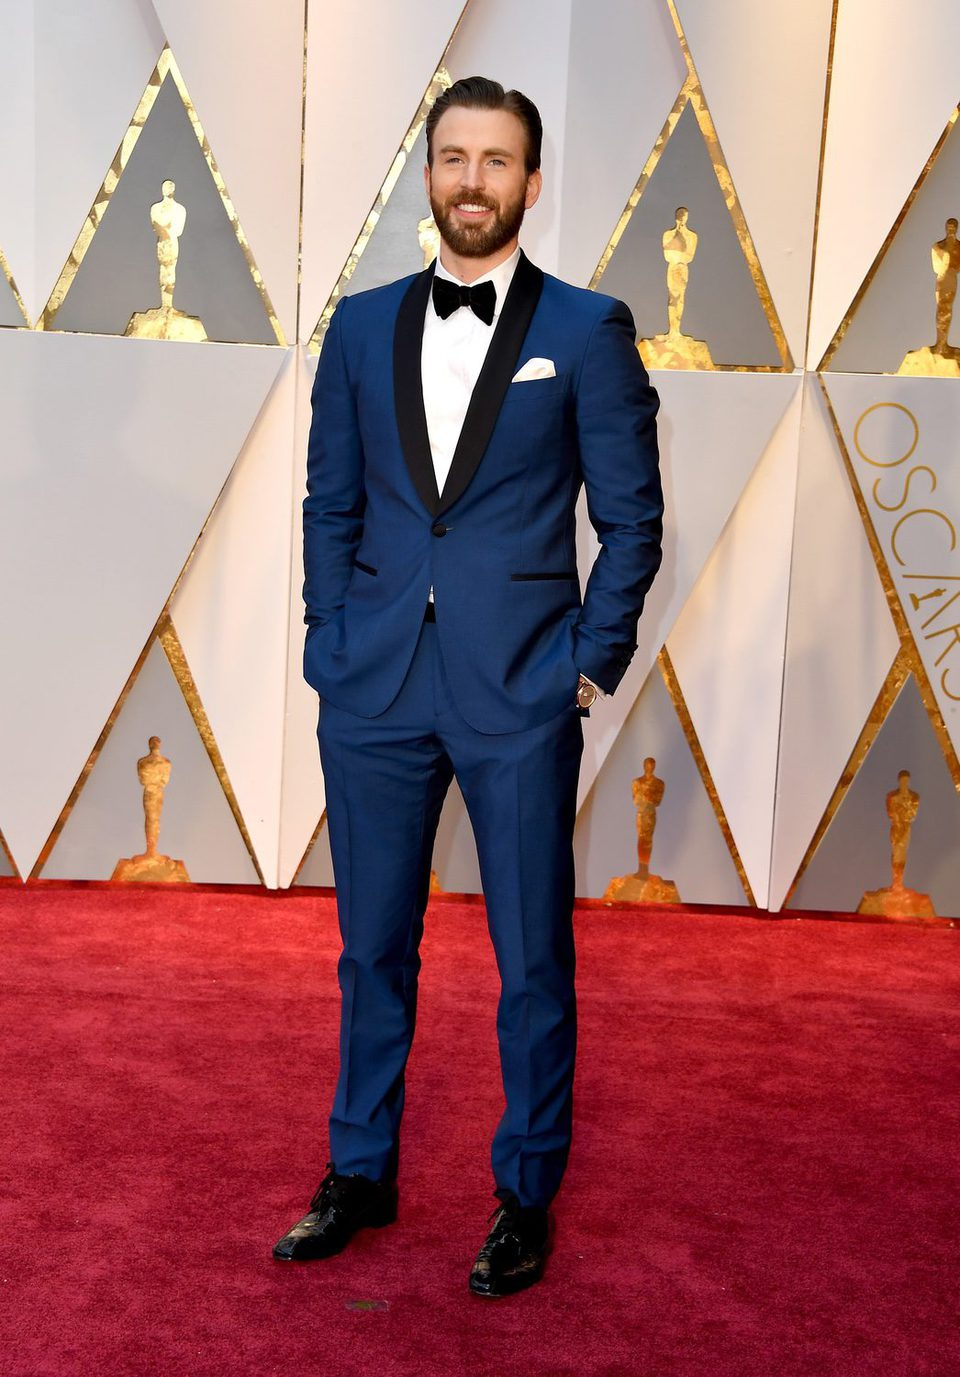 Chris Evans at the red carpet of the Oscars 2017